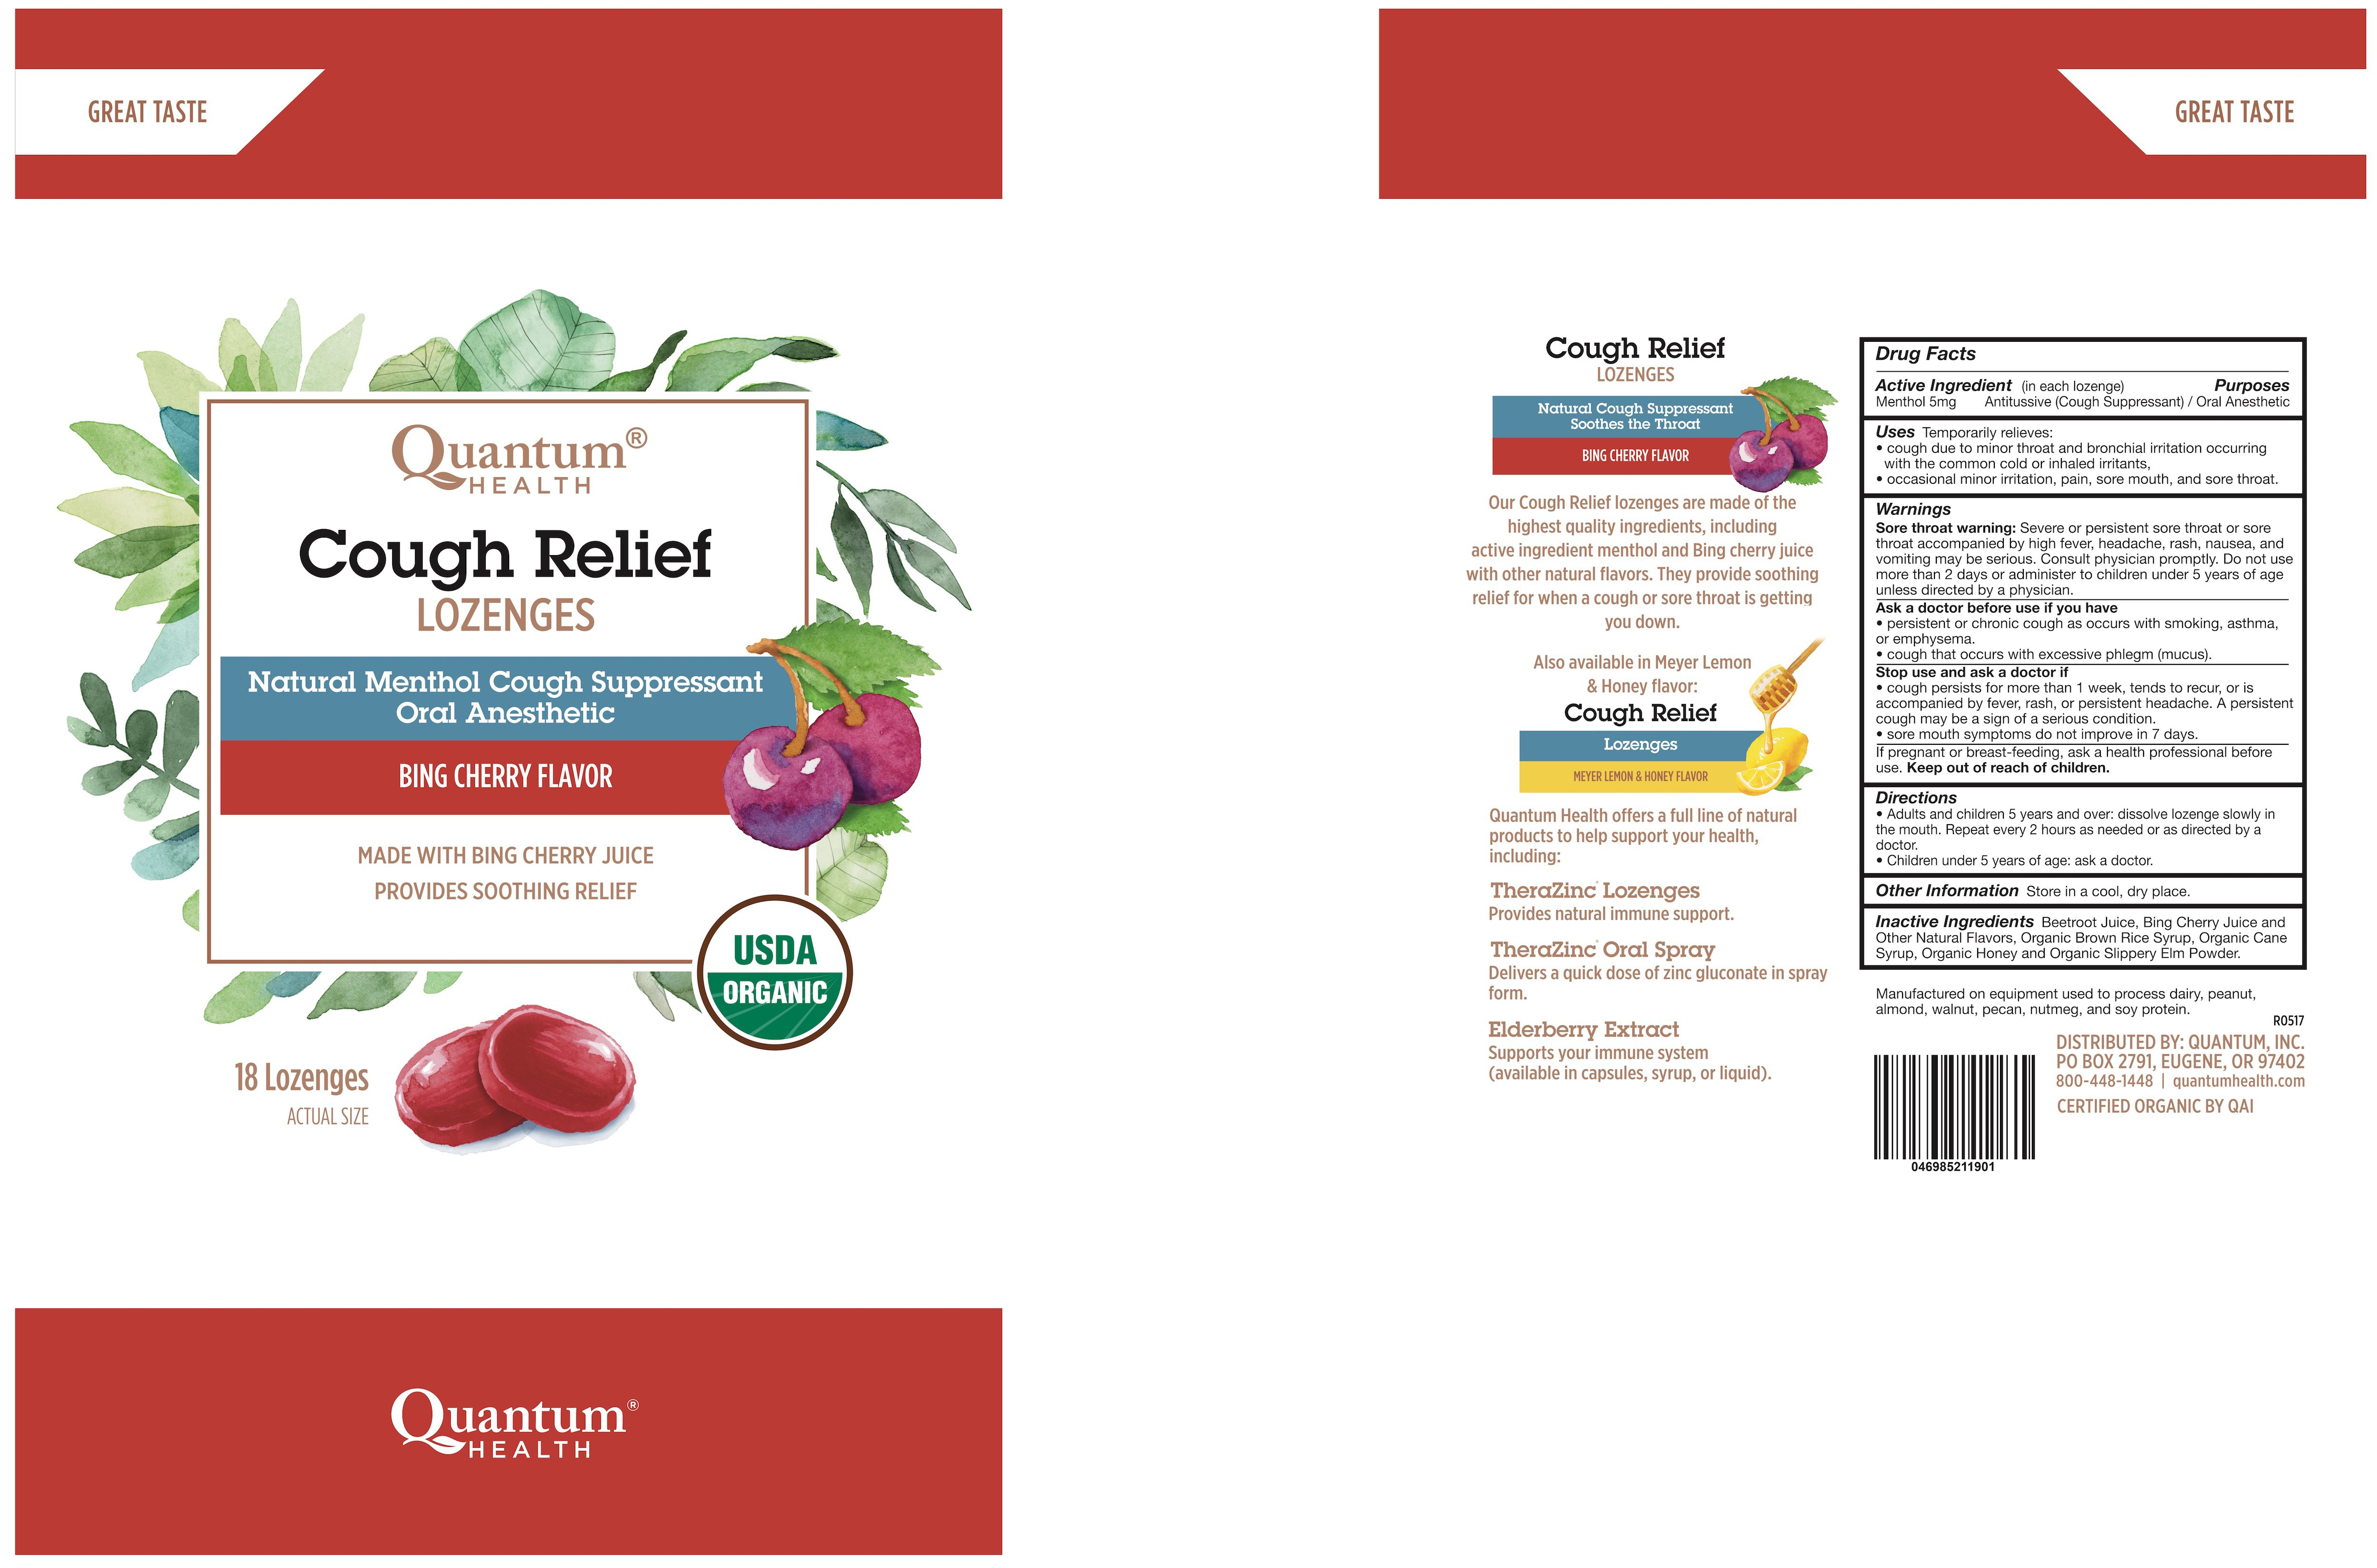 Cough Relief Lozenges, Bing Cherry | The Natural Products Brands